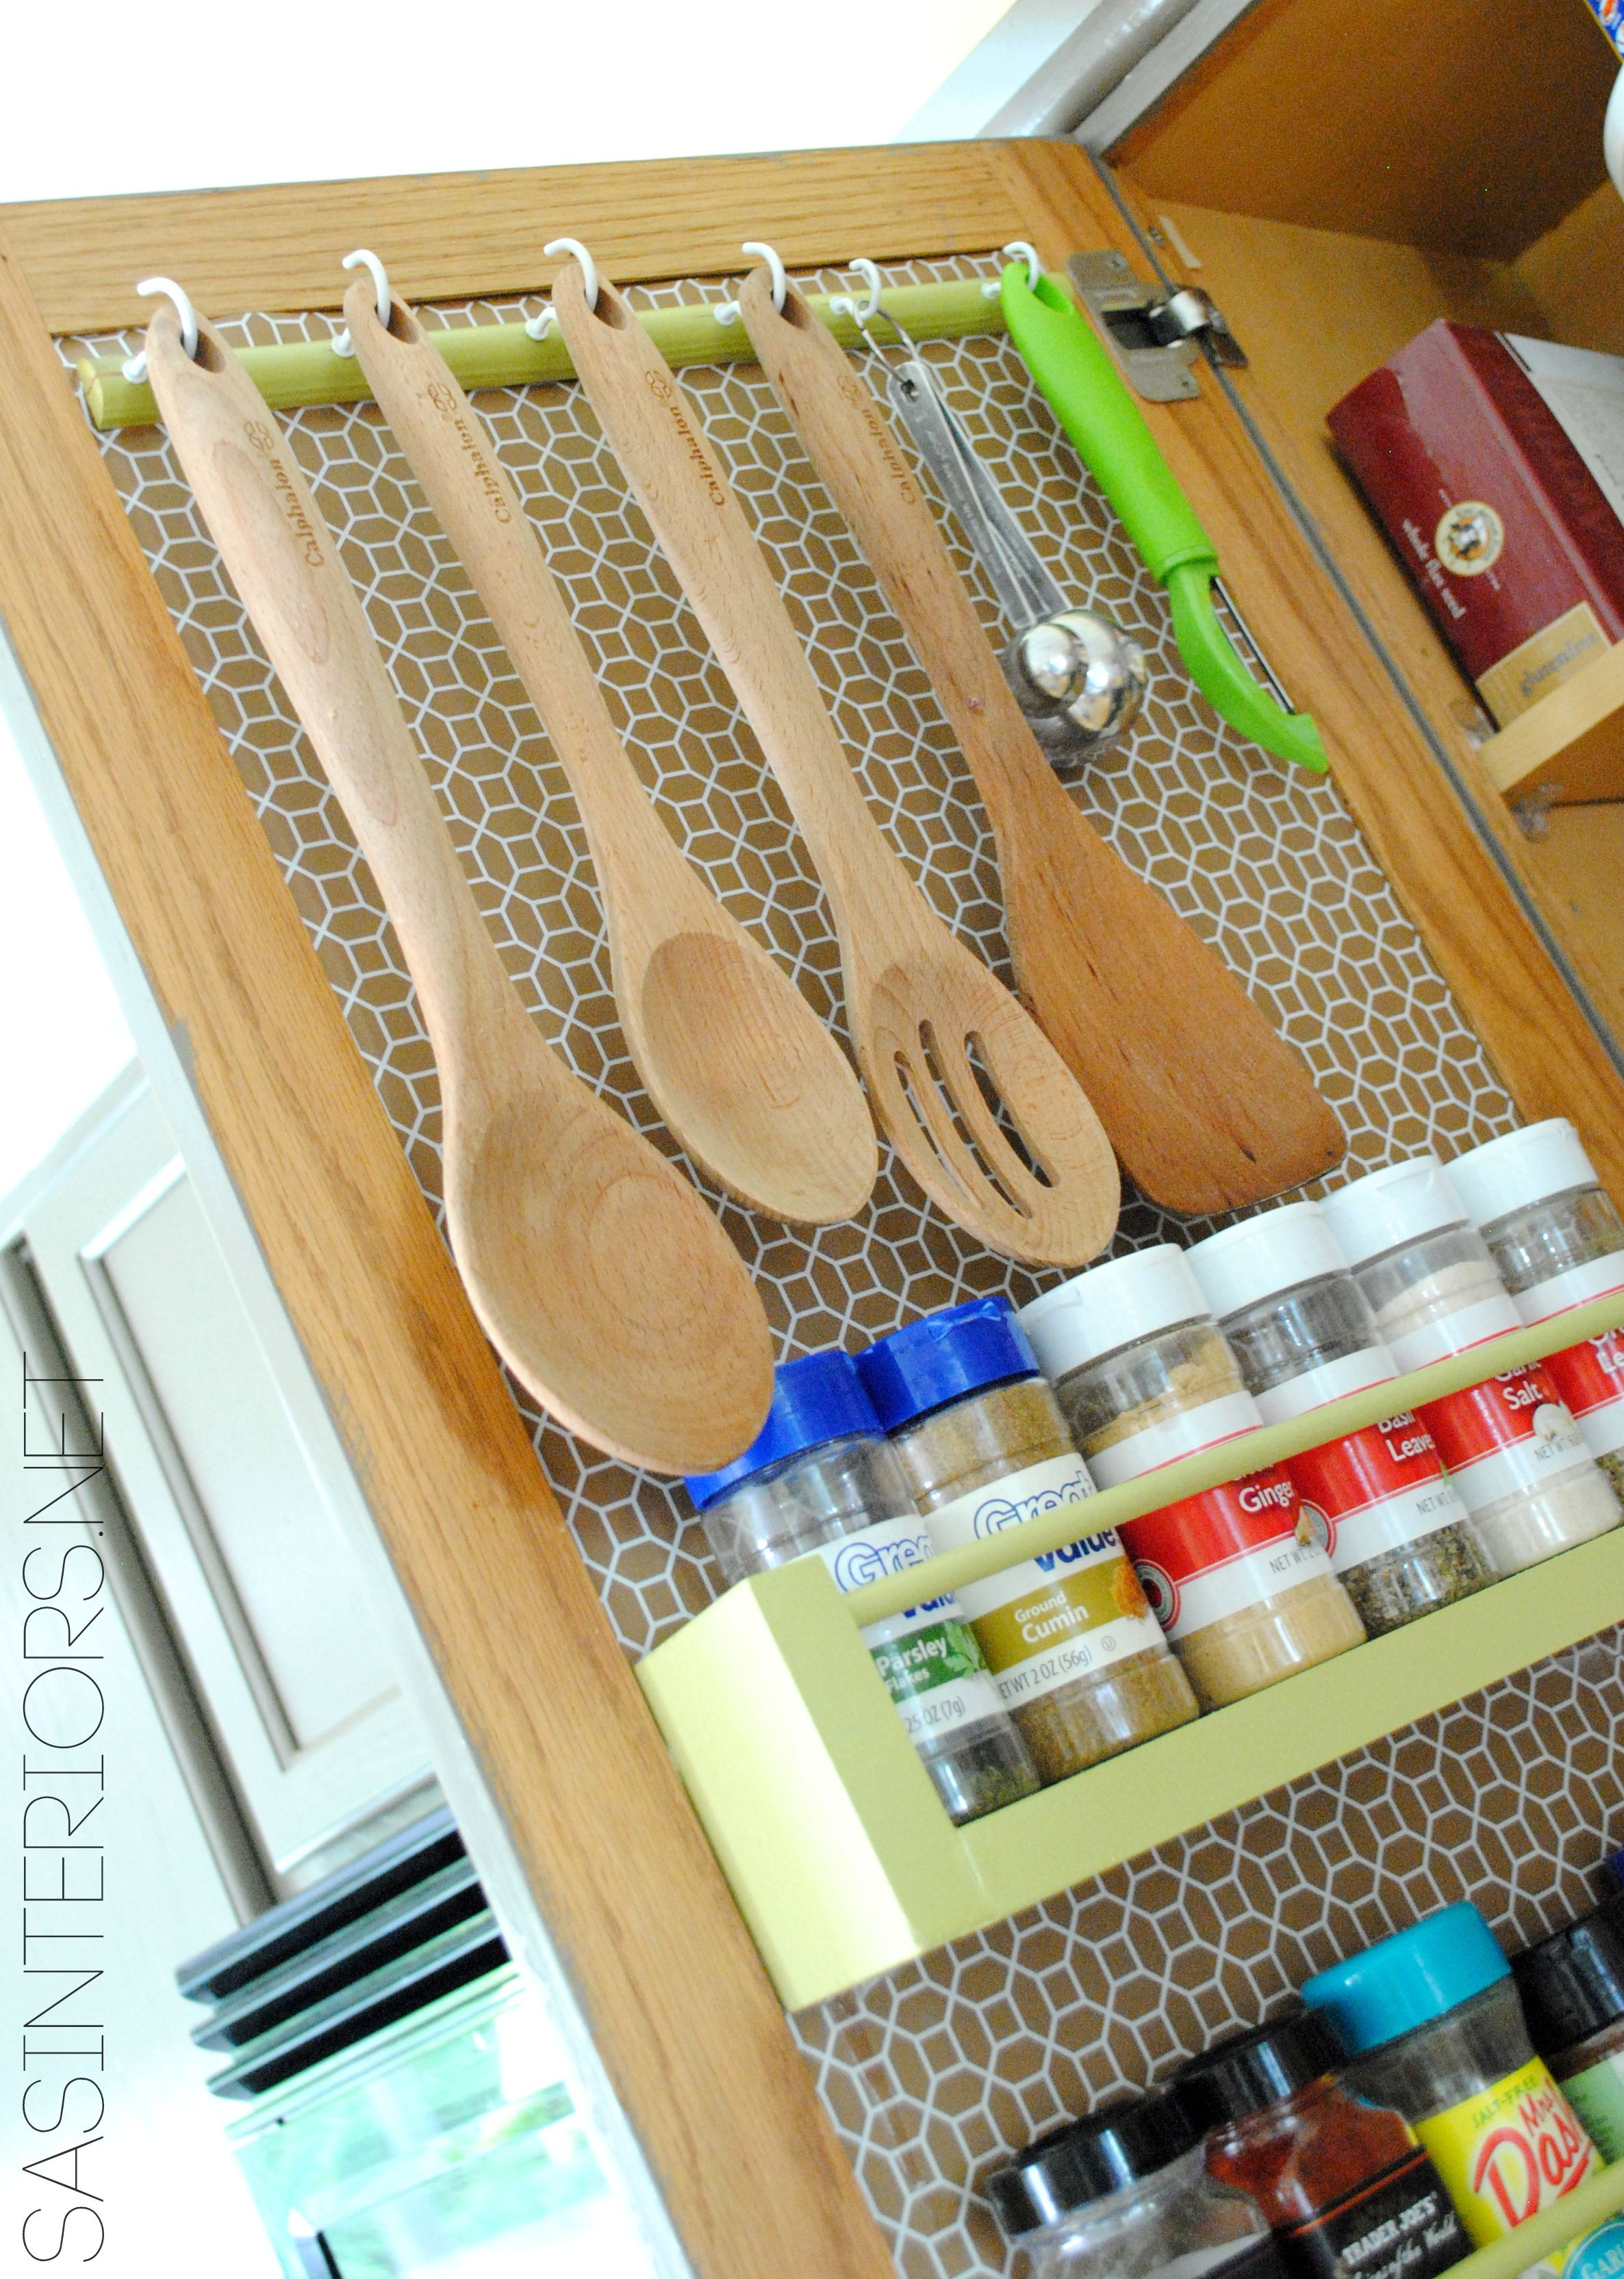 rv kitchen cabinets Kitchen Organization Ideas for storage on the inside of the kitchen cabinets by Jenna Burger